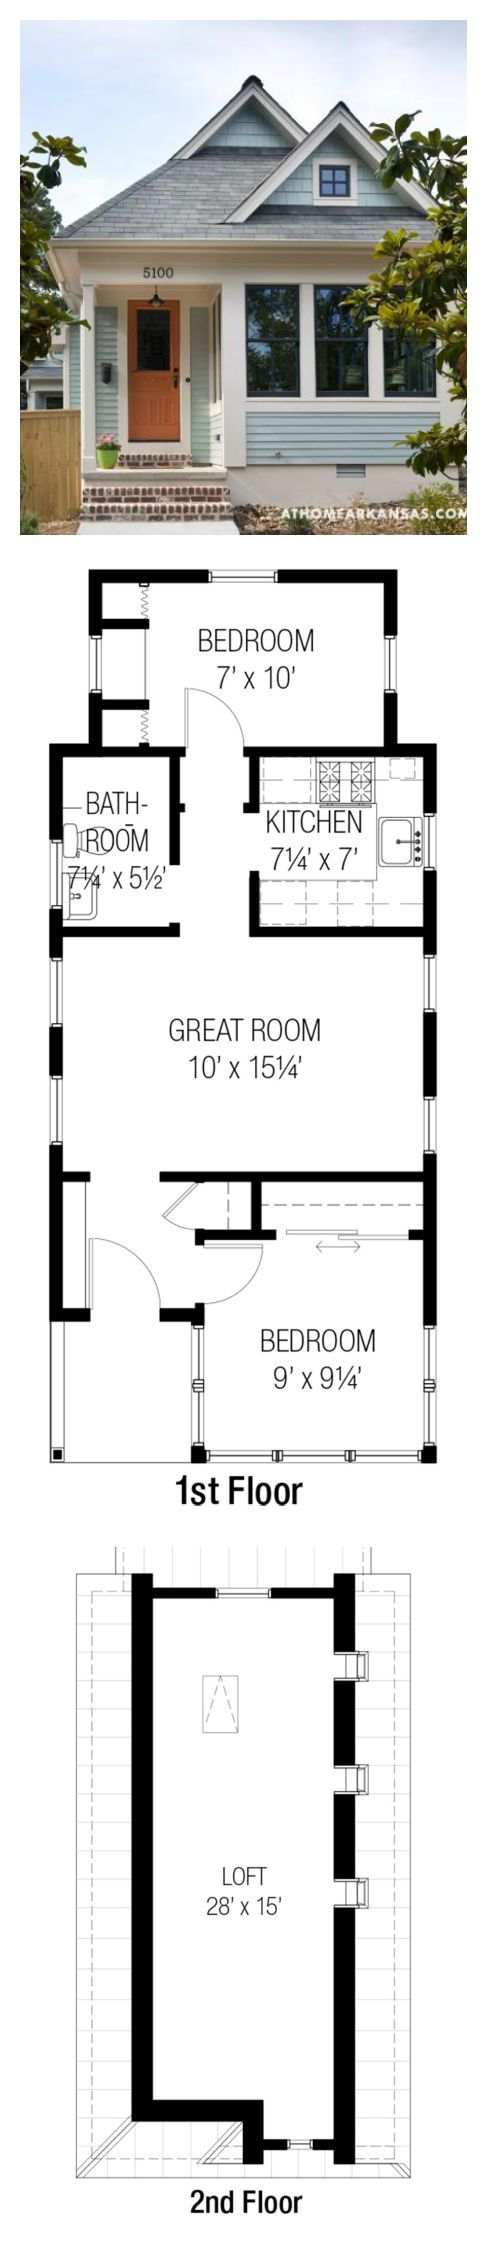 Plan #915-16/Whidbey from Tumbleweed Tiny House Co.   557 SF   2 Bed   1 Bath   0 Car   1 Story + Loft (for playhouse/vacation home)